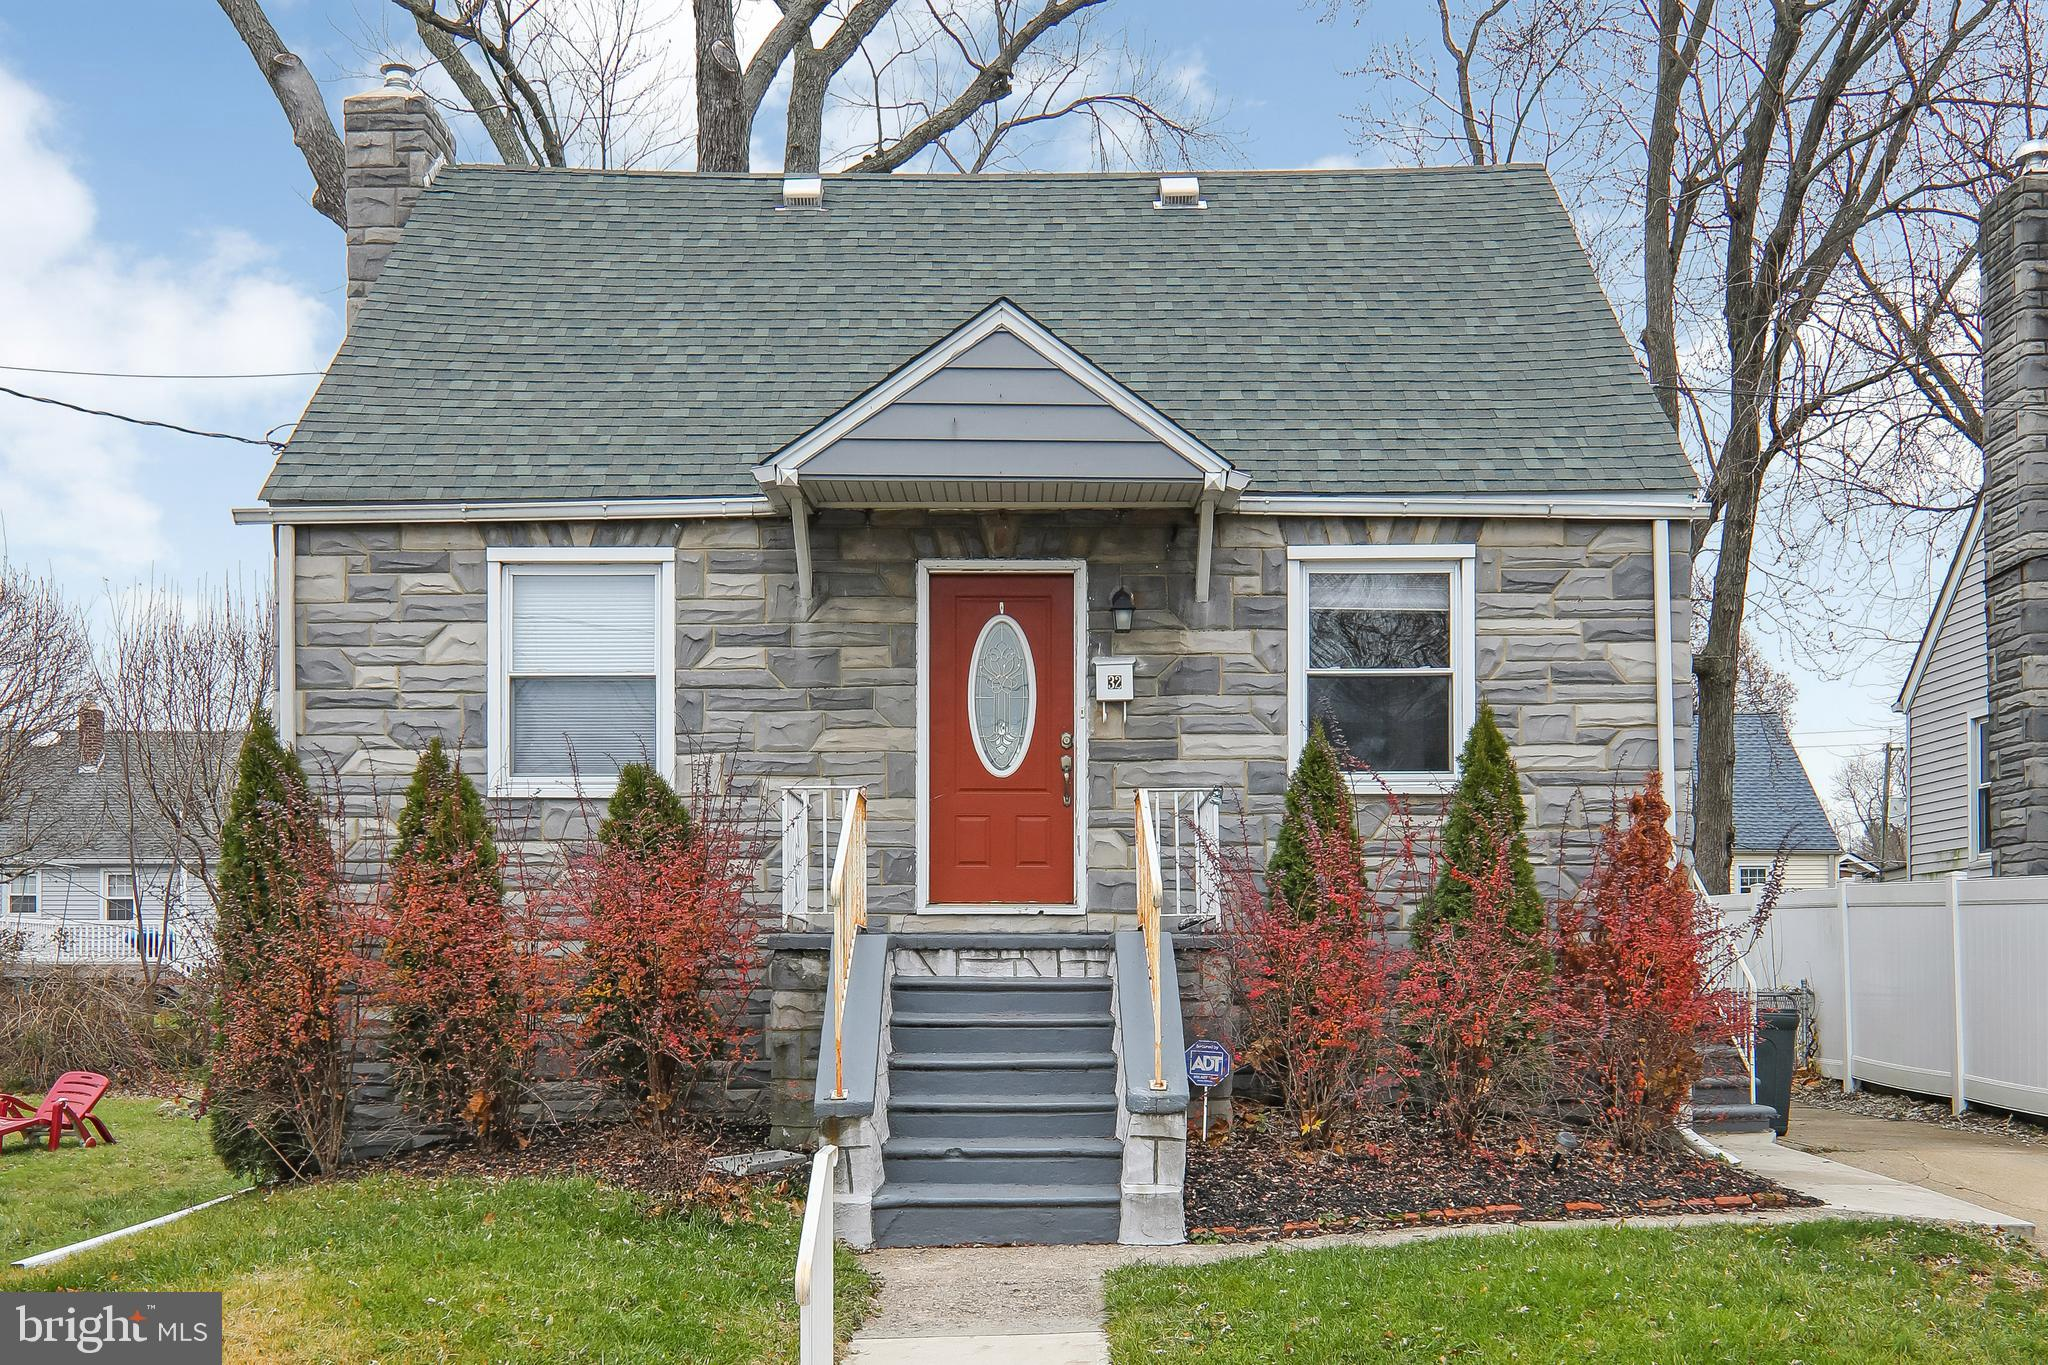 32 HARDING AVENUE, MOUNT EPHRAIM, NJ 08059